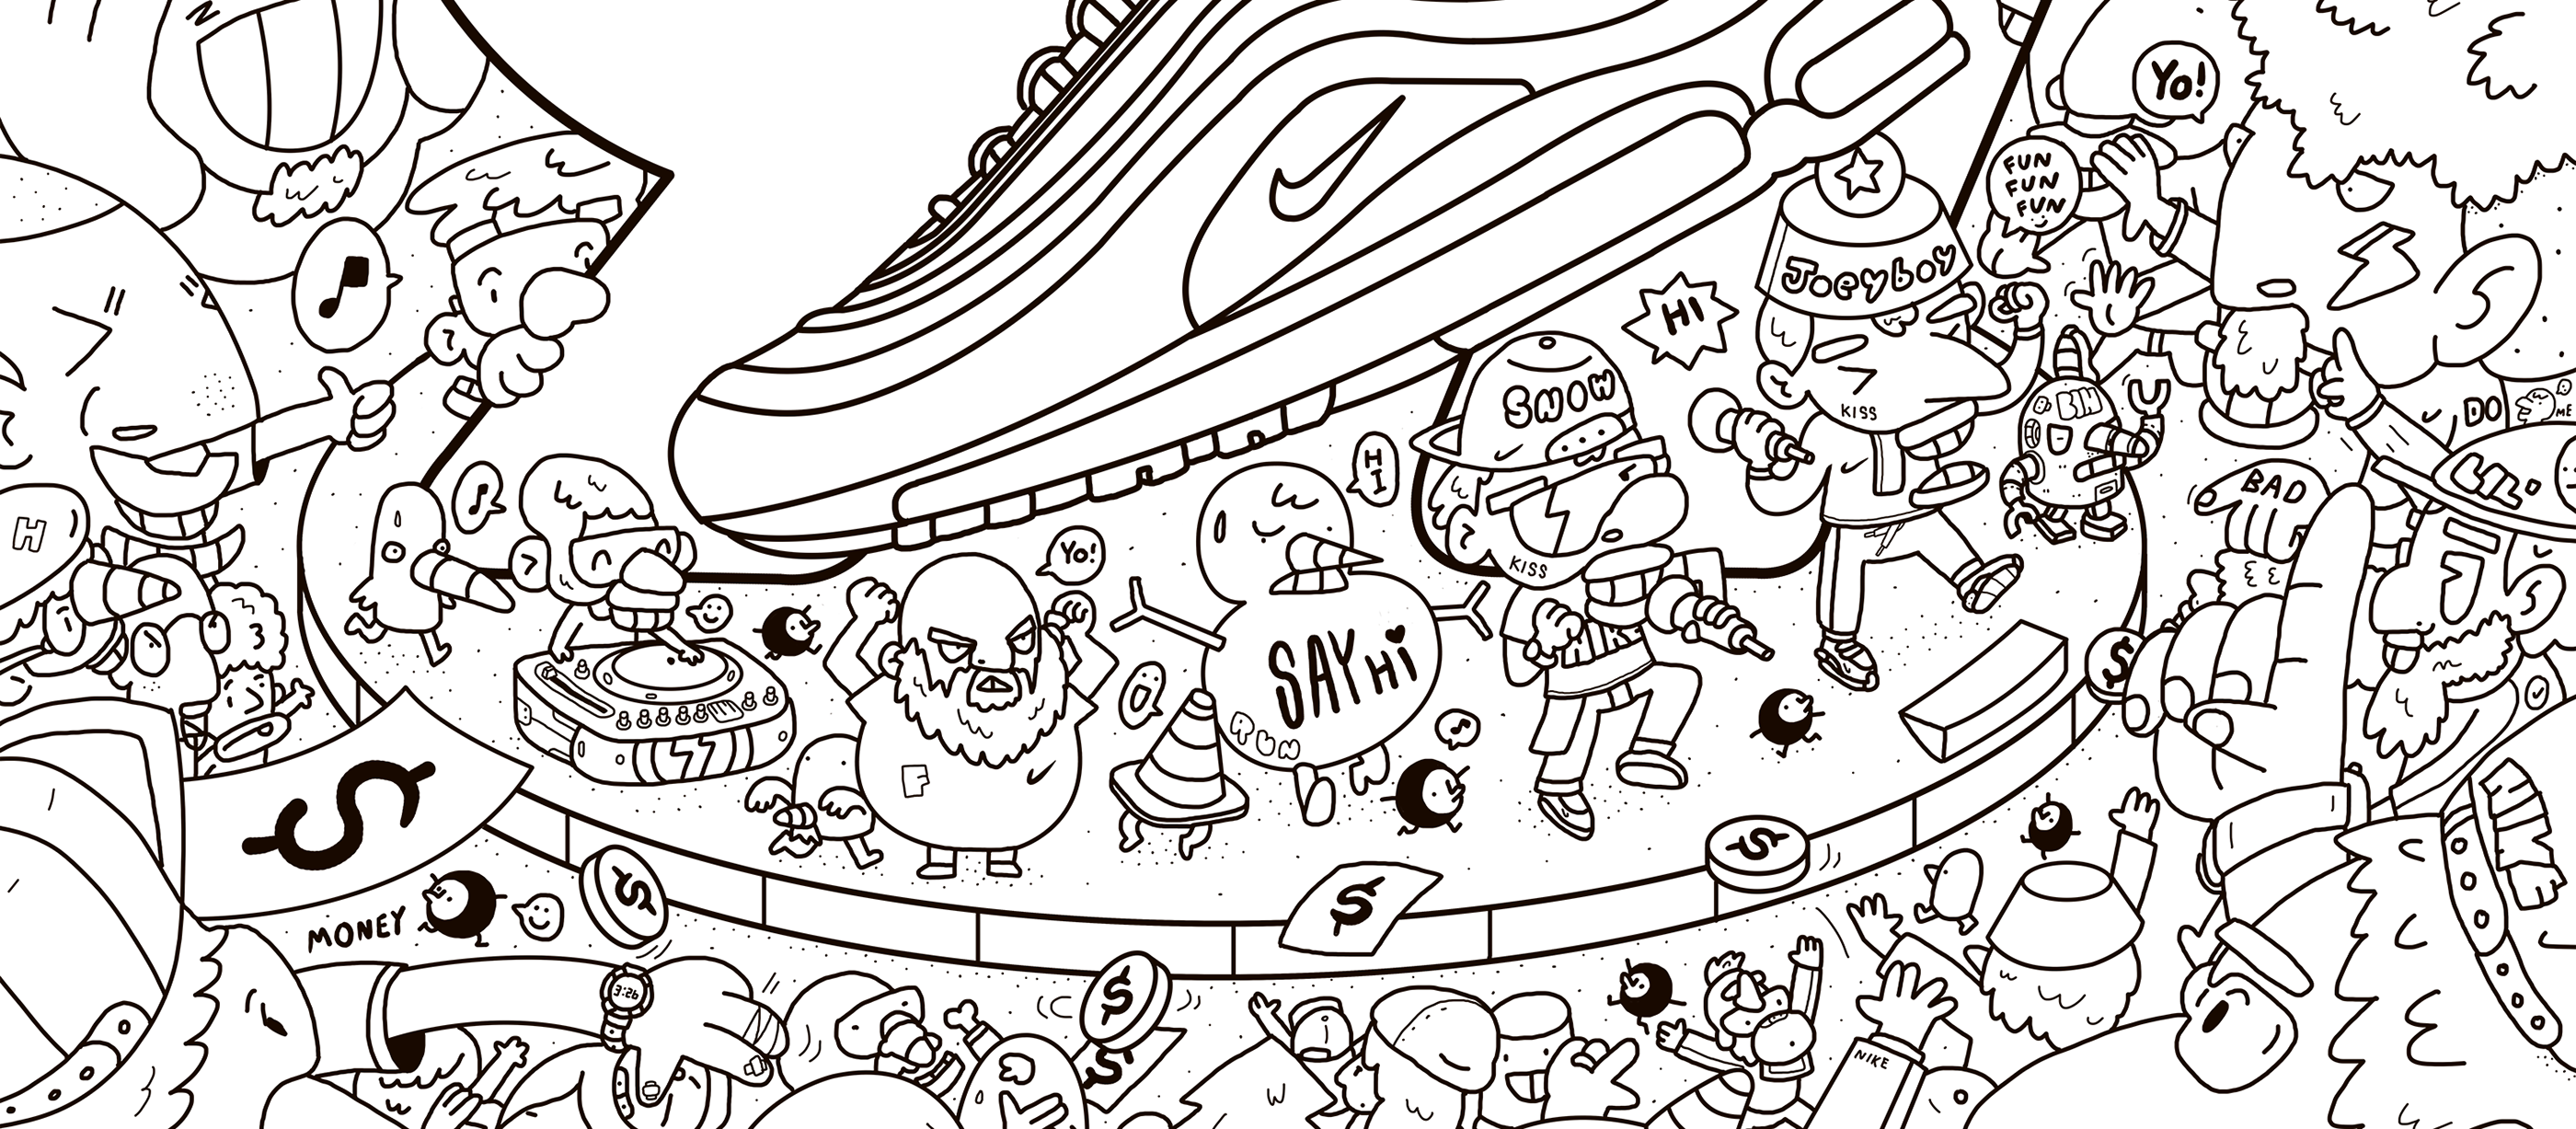 NIKE AIR MAX DAY x 3LAND on Behance